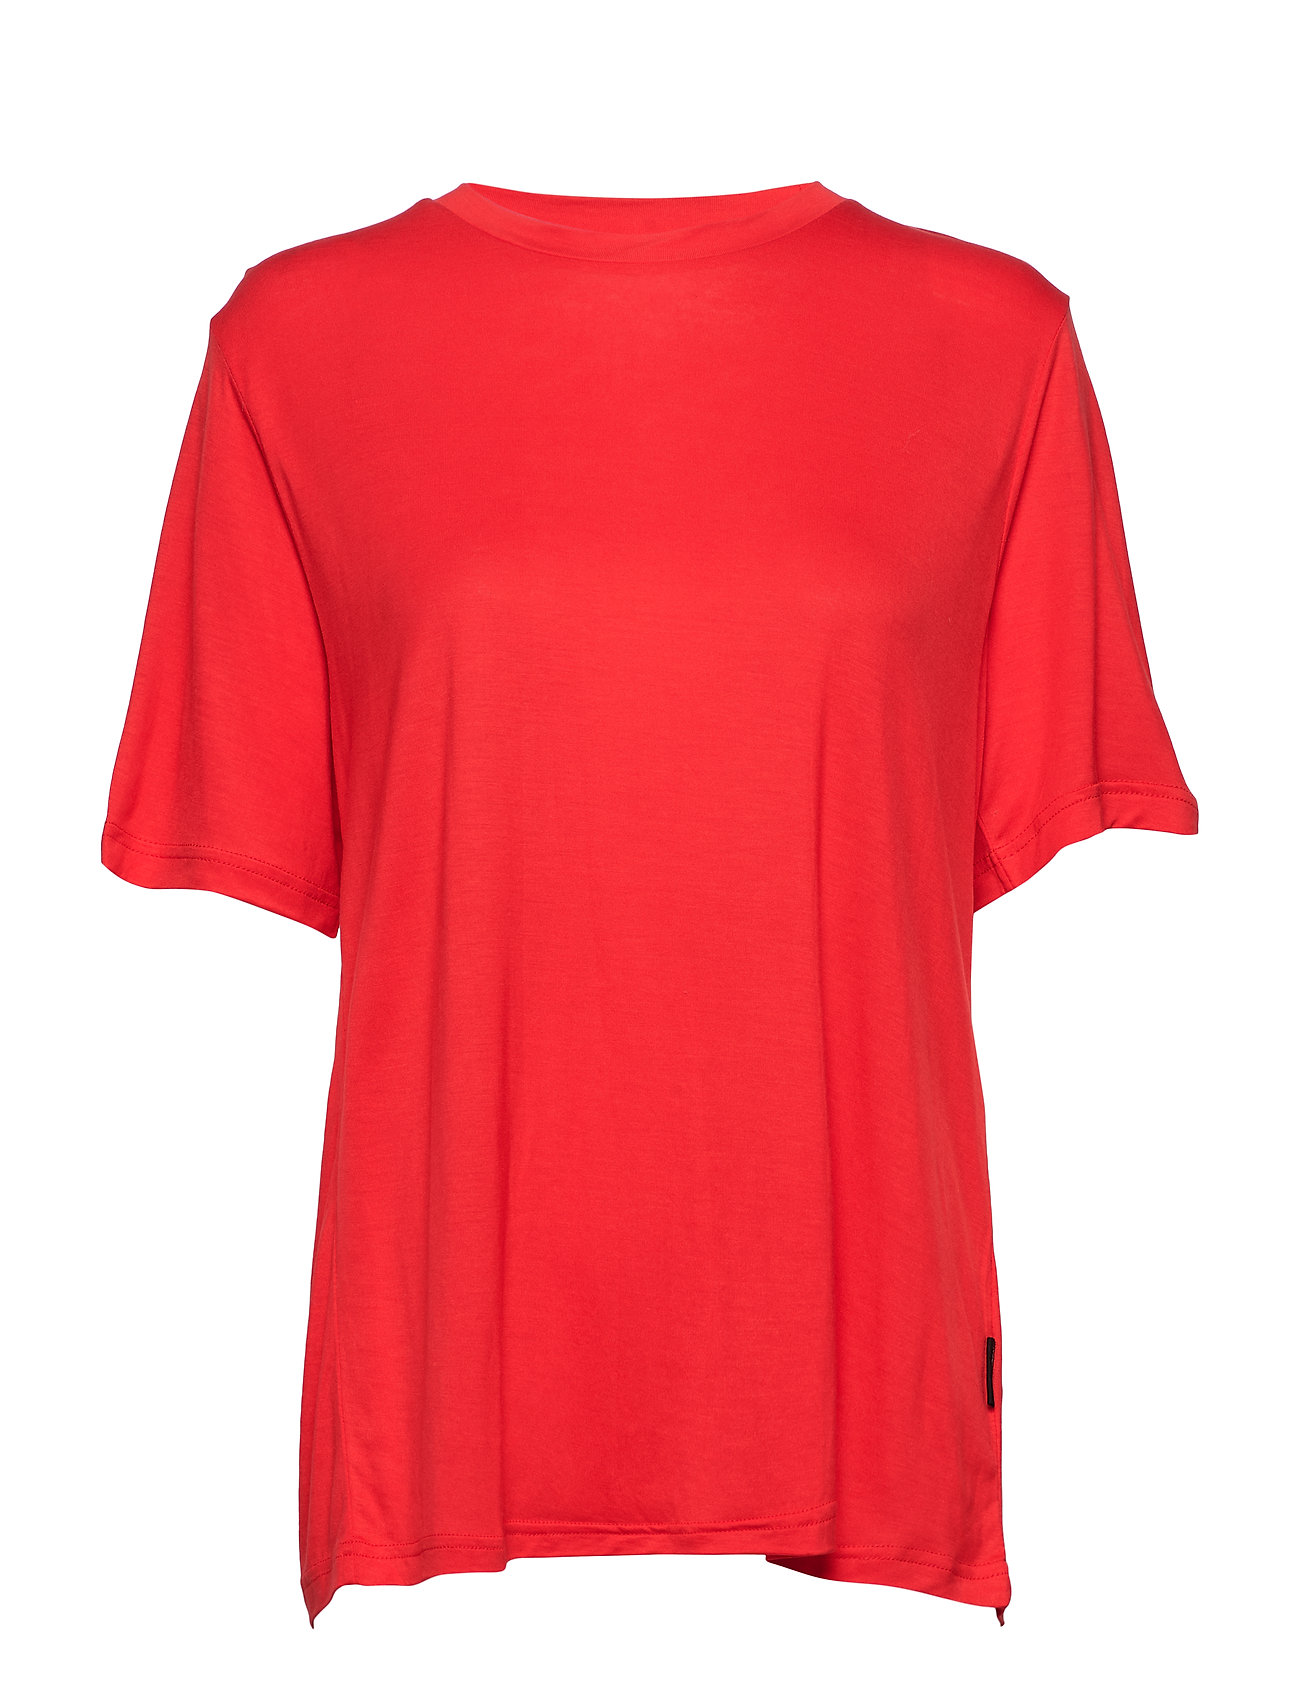 Cheap Monday Perfect slice tee - SCARLETRED